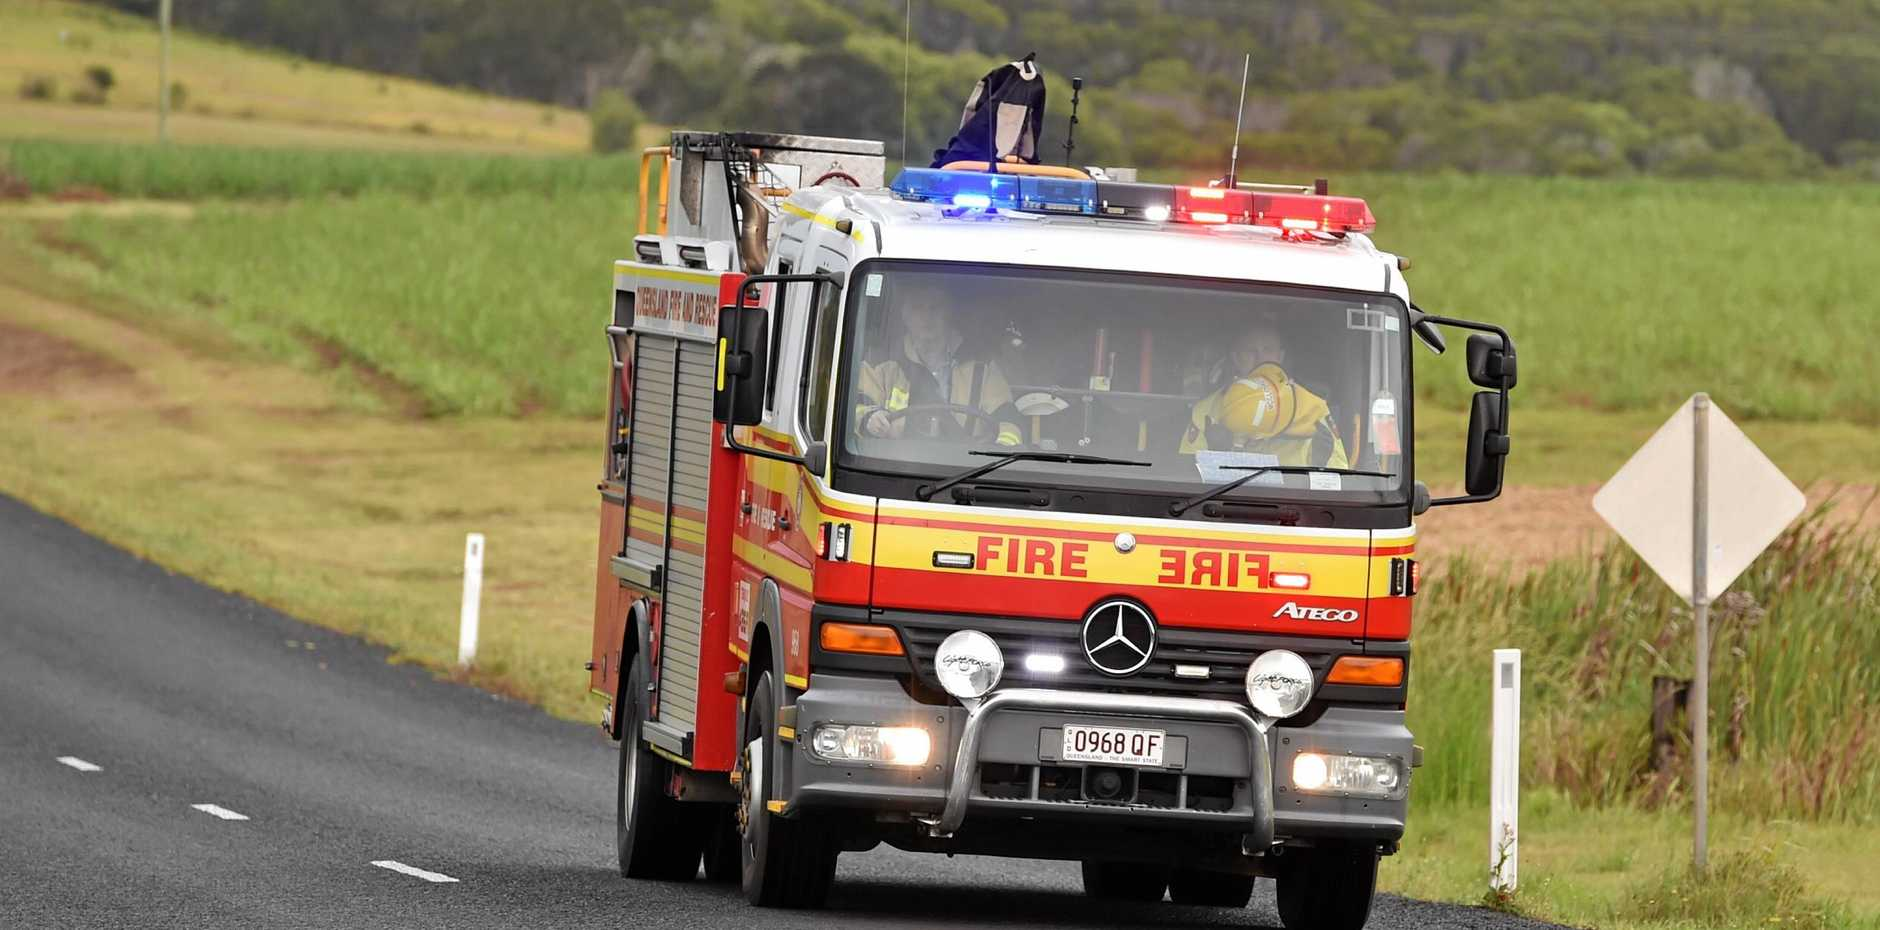 Queensland Fire and Rescue. Photo: Alistair Brightman / Fraser Coast Chronicle